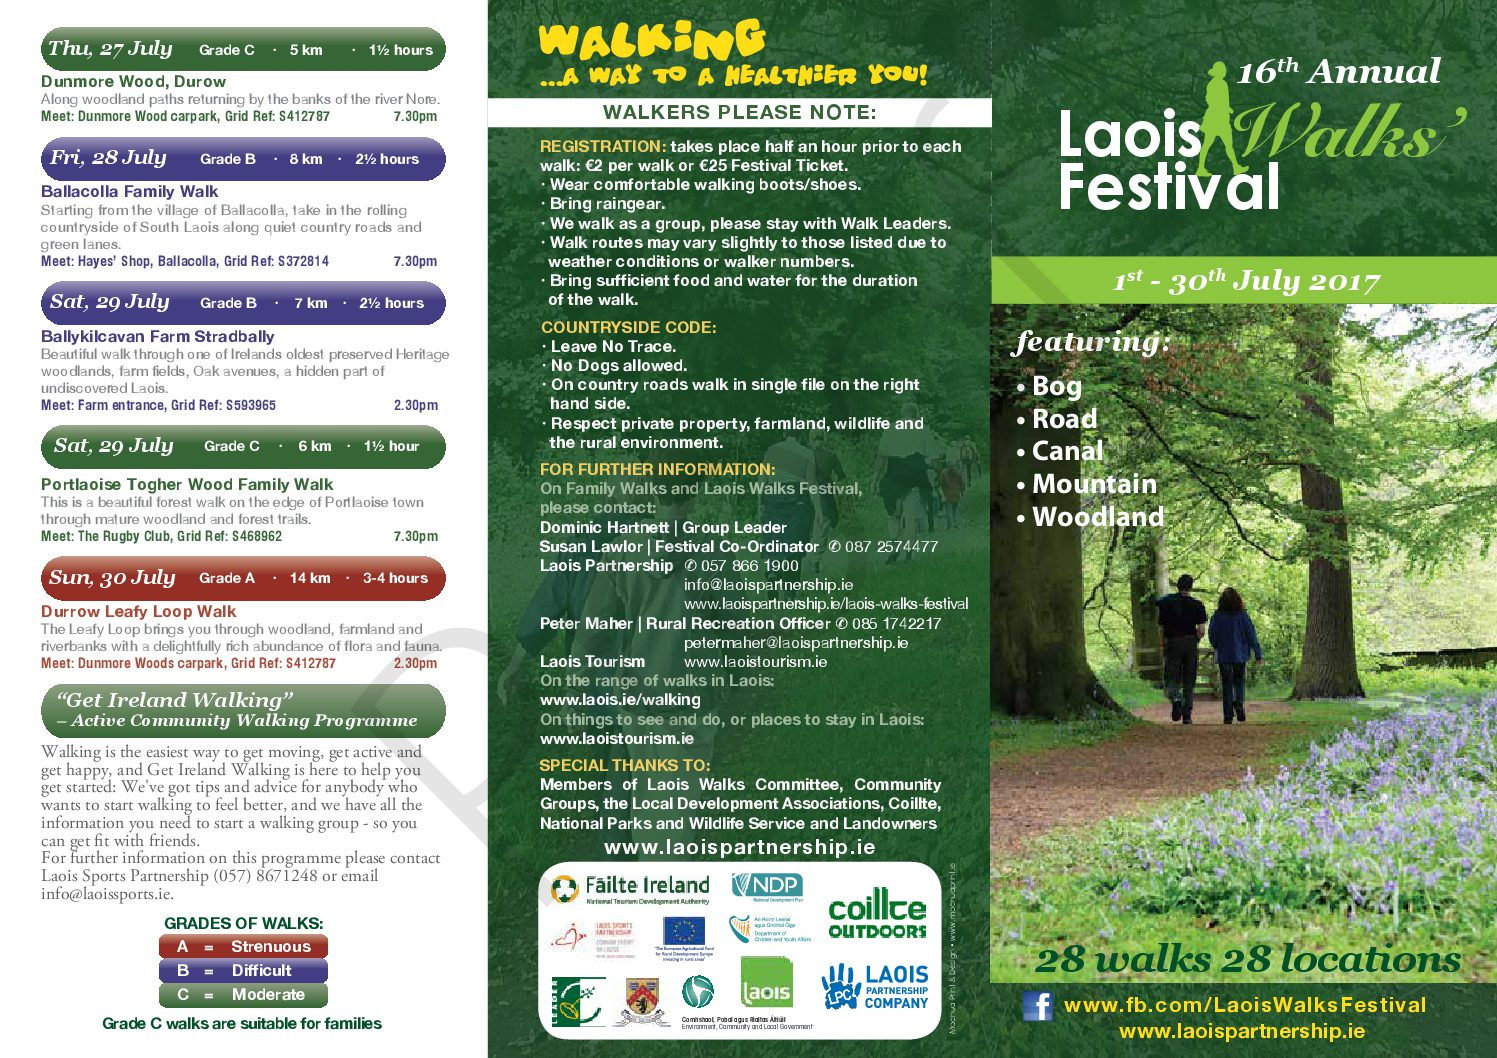 16th Annual Laois Walks Festival